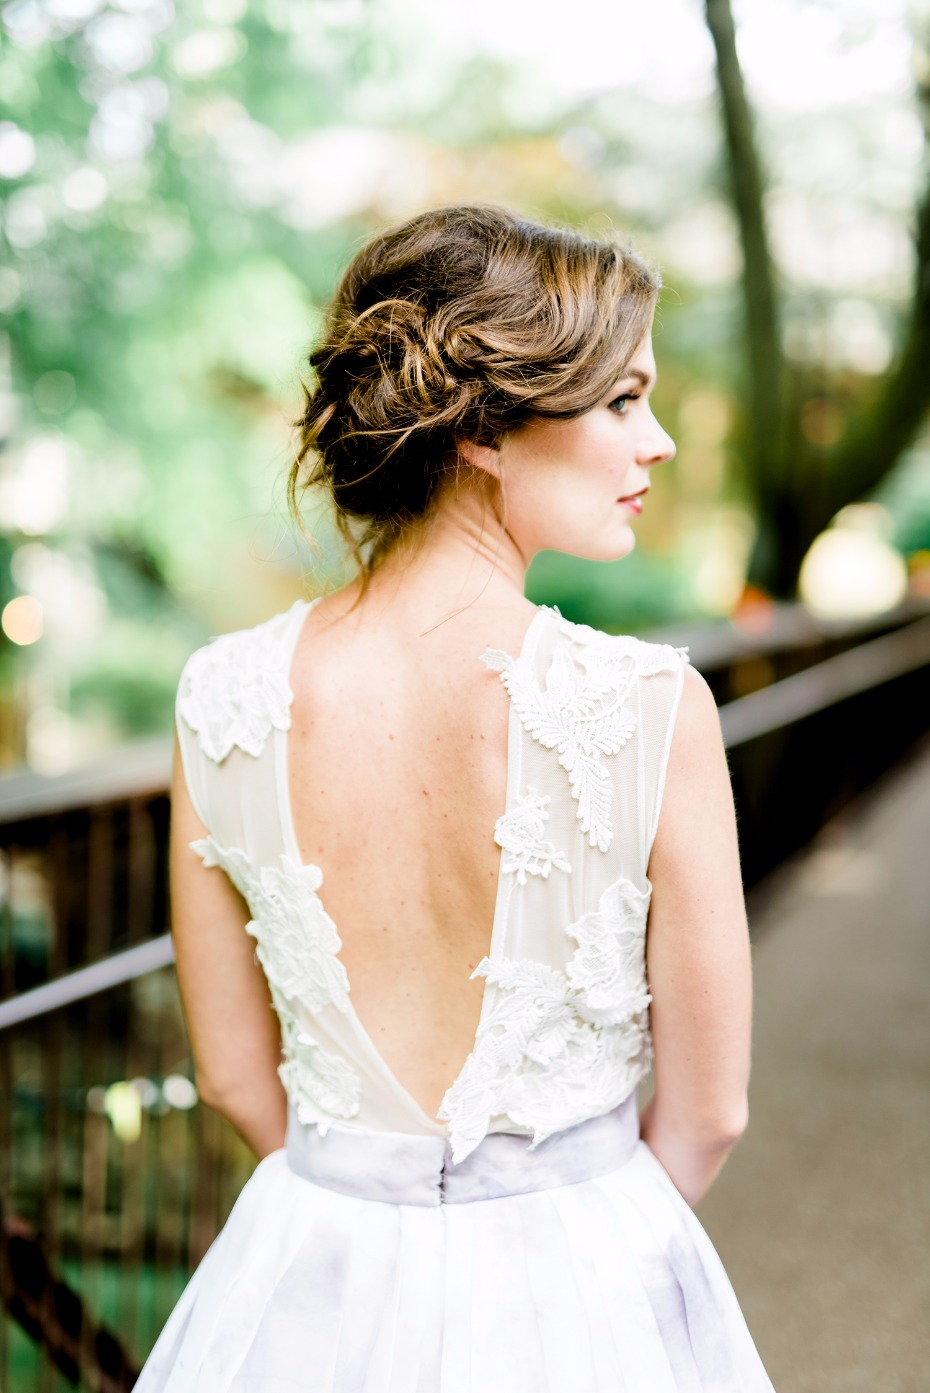 Hair and dress goals